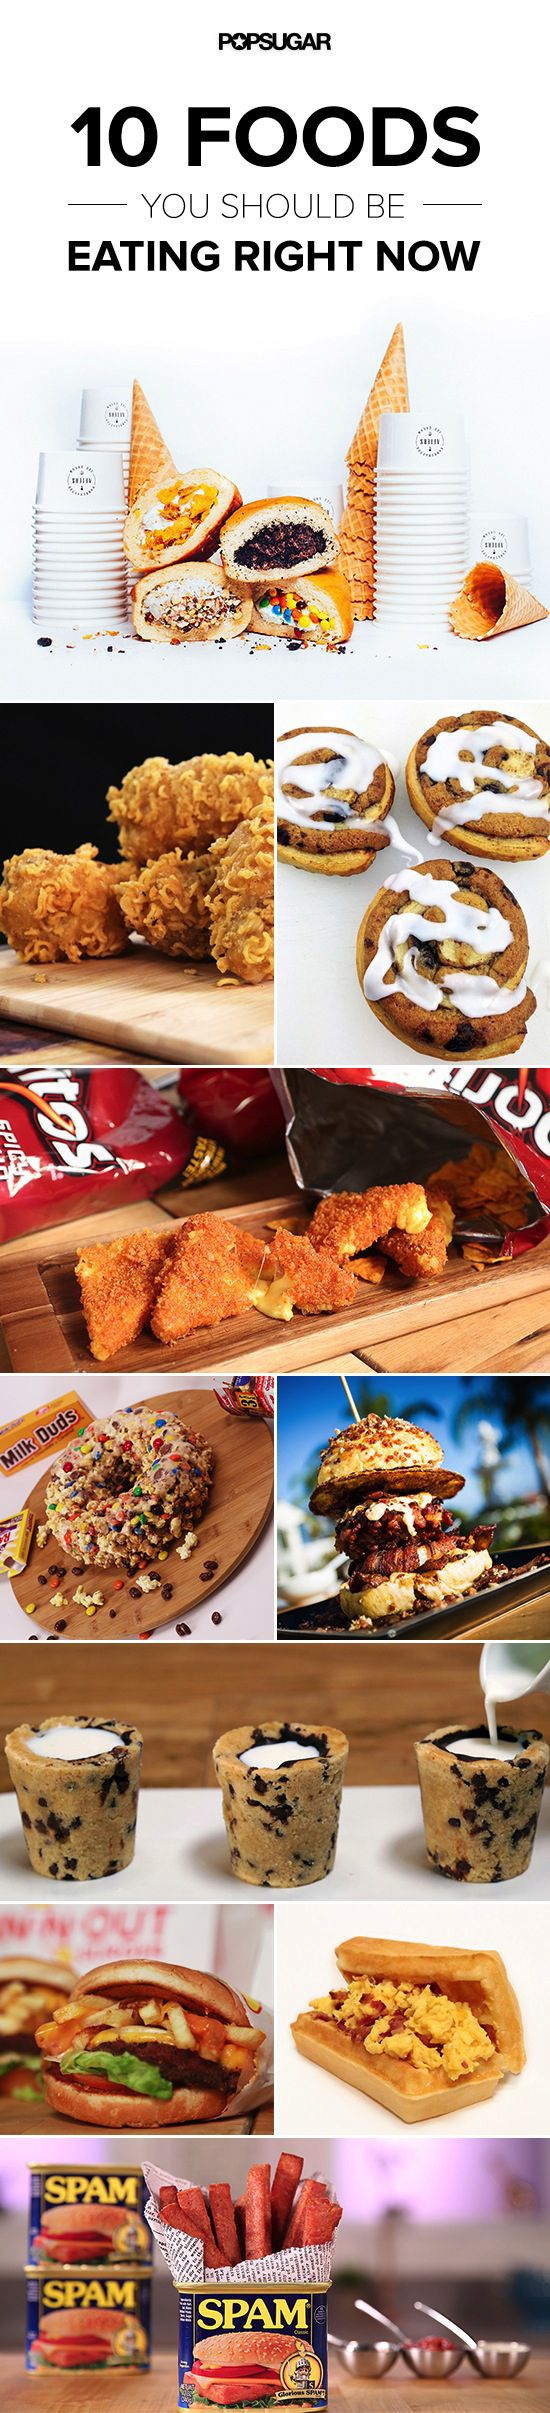 10 mouthwatering food trends you need to try now